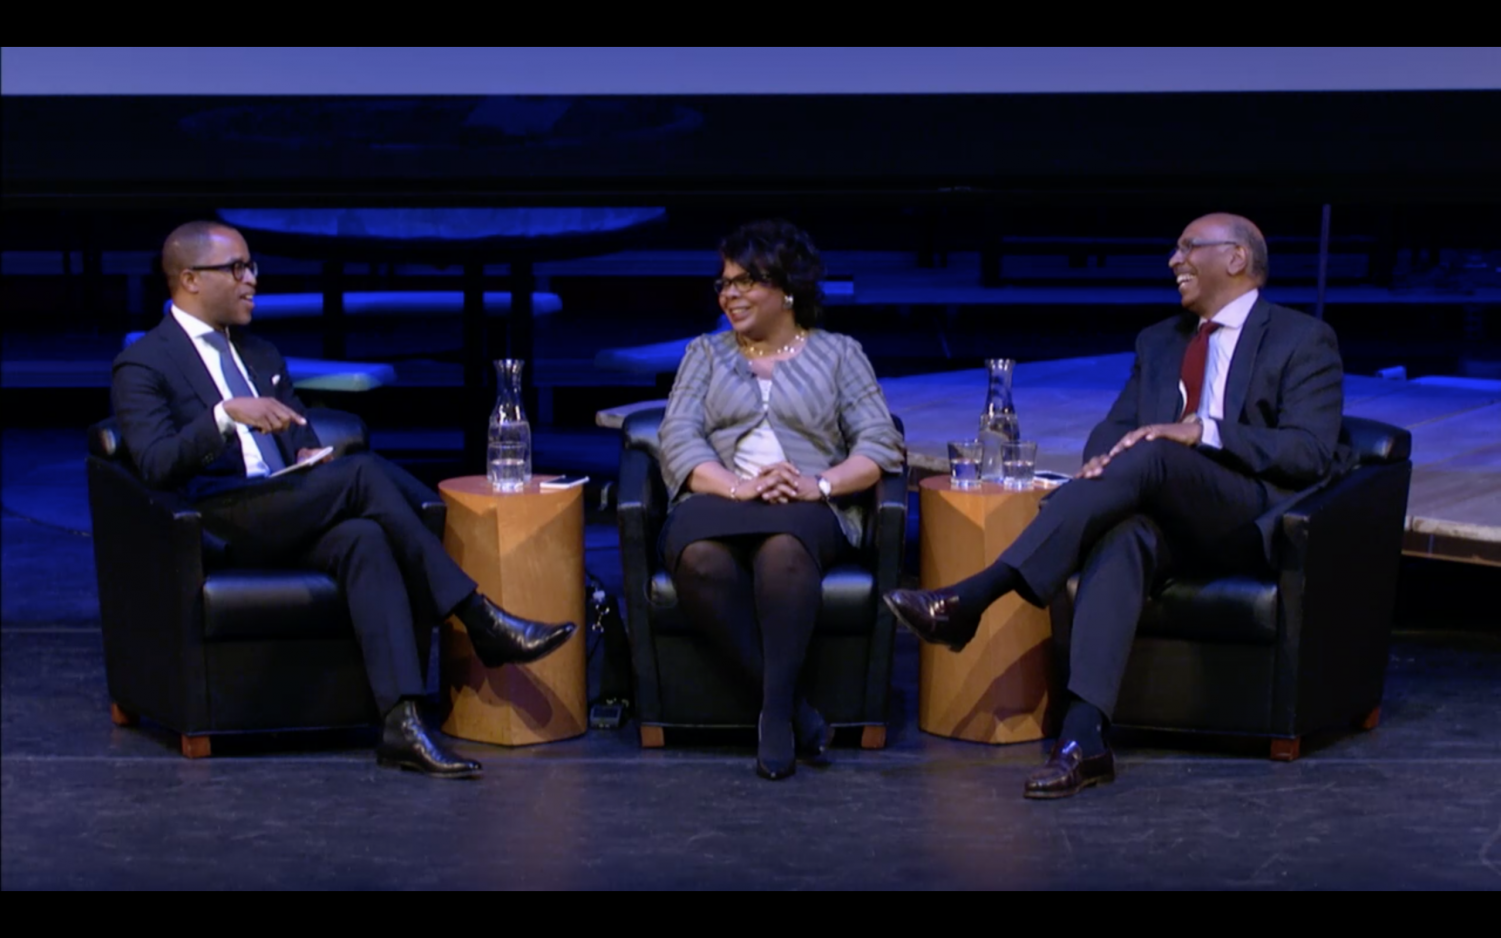 Jonathan Capehart, who sits on the Washington Post editorial board; April Ryan, White House Correspondent for American Urban Radio Networks, and Michael Steele, the former chair of the Republican National Committee, took to the stage on Monday to discuss race and politics in America.